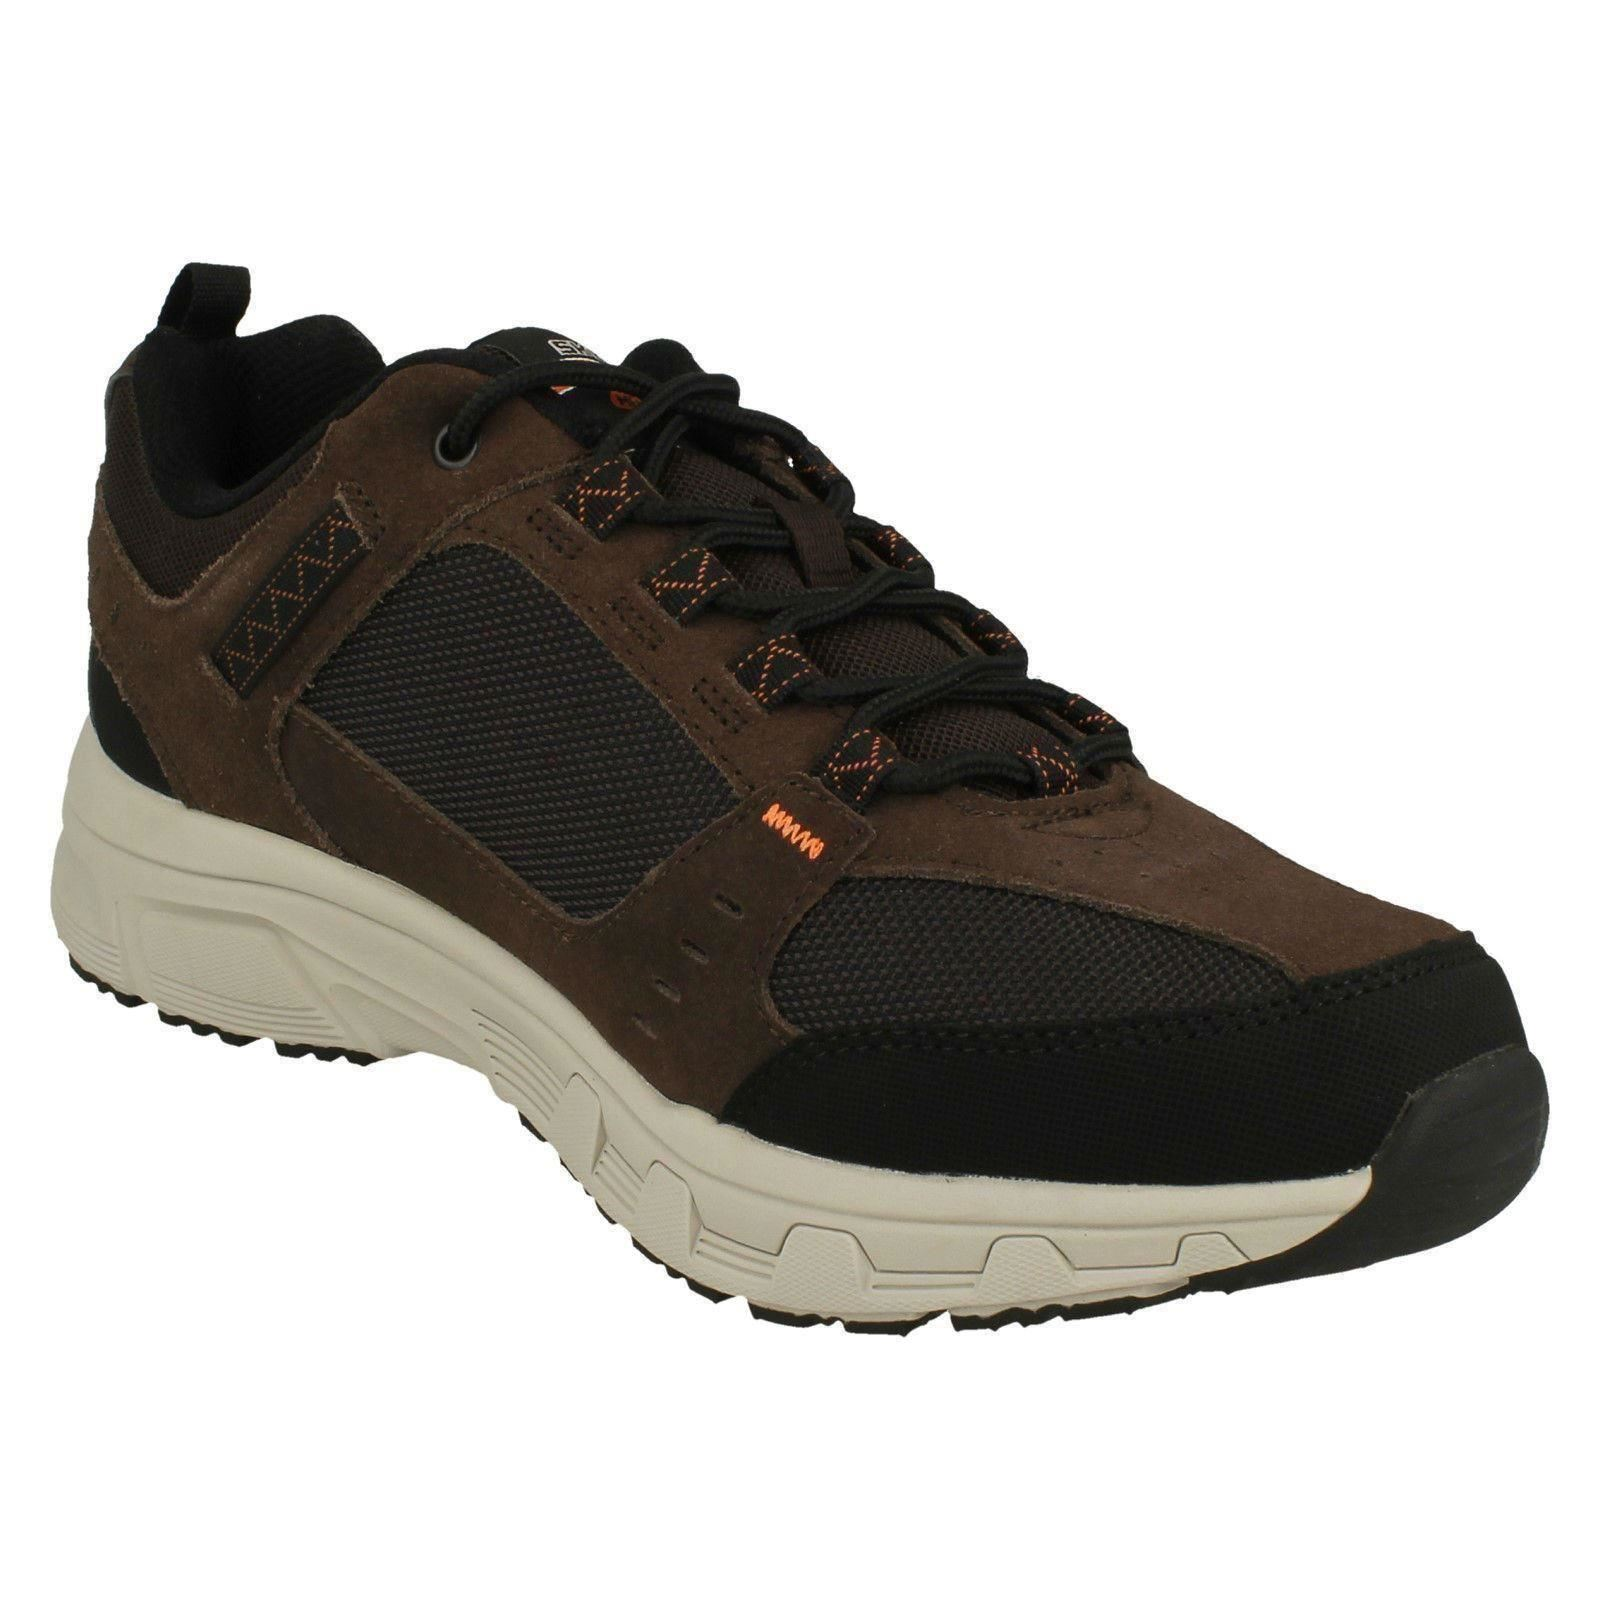 Herren Herren Herren Skechers Spitze Up-Trainer Eiche Canyon 70a8f5